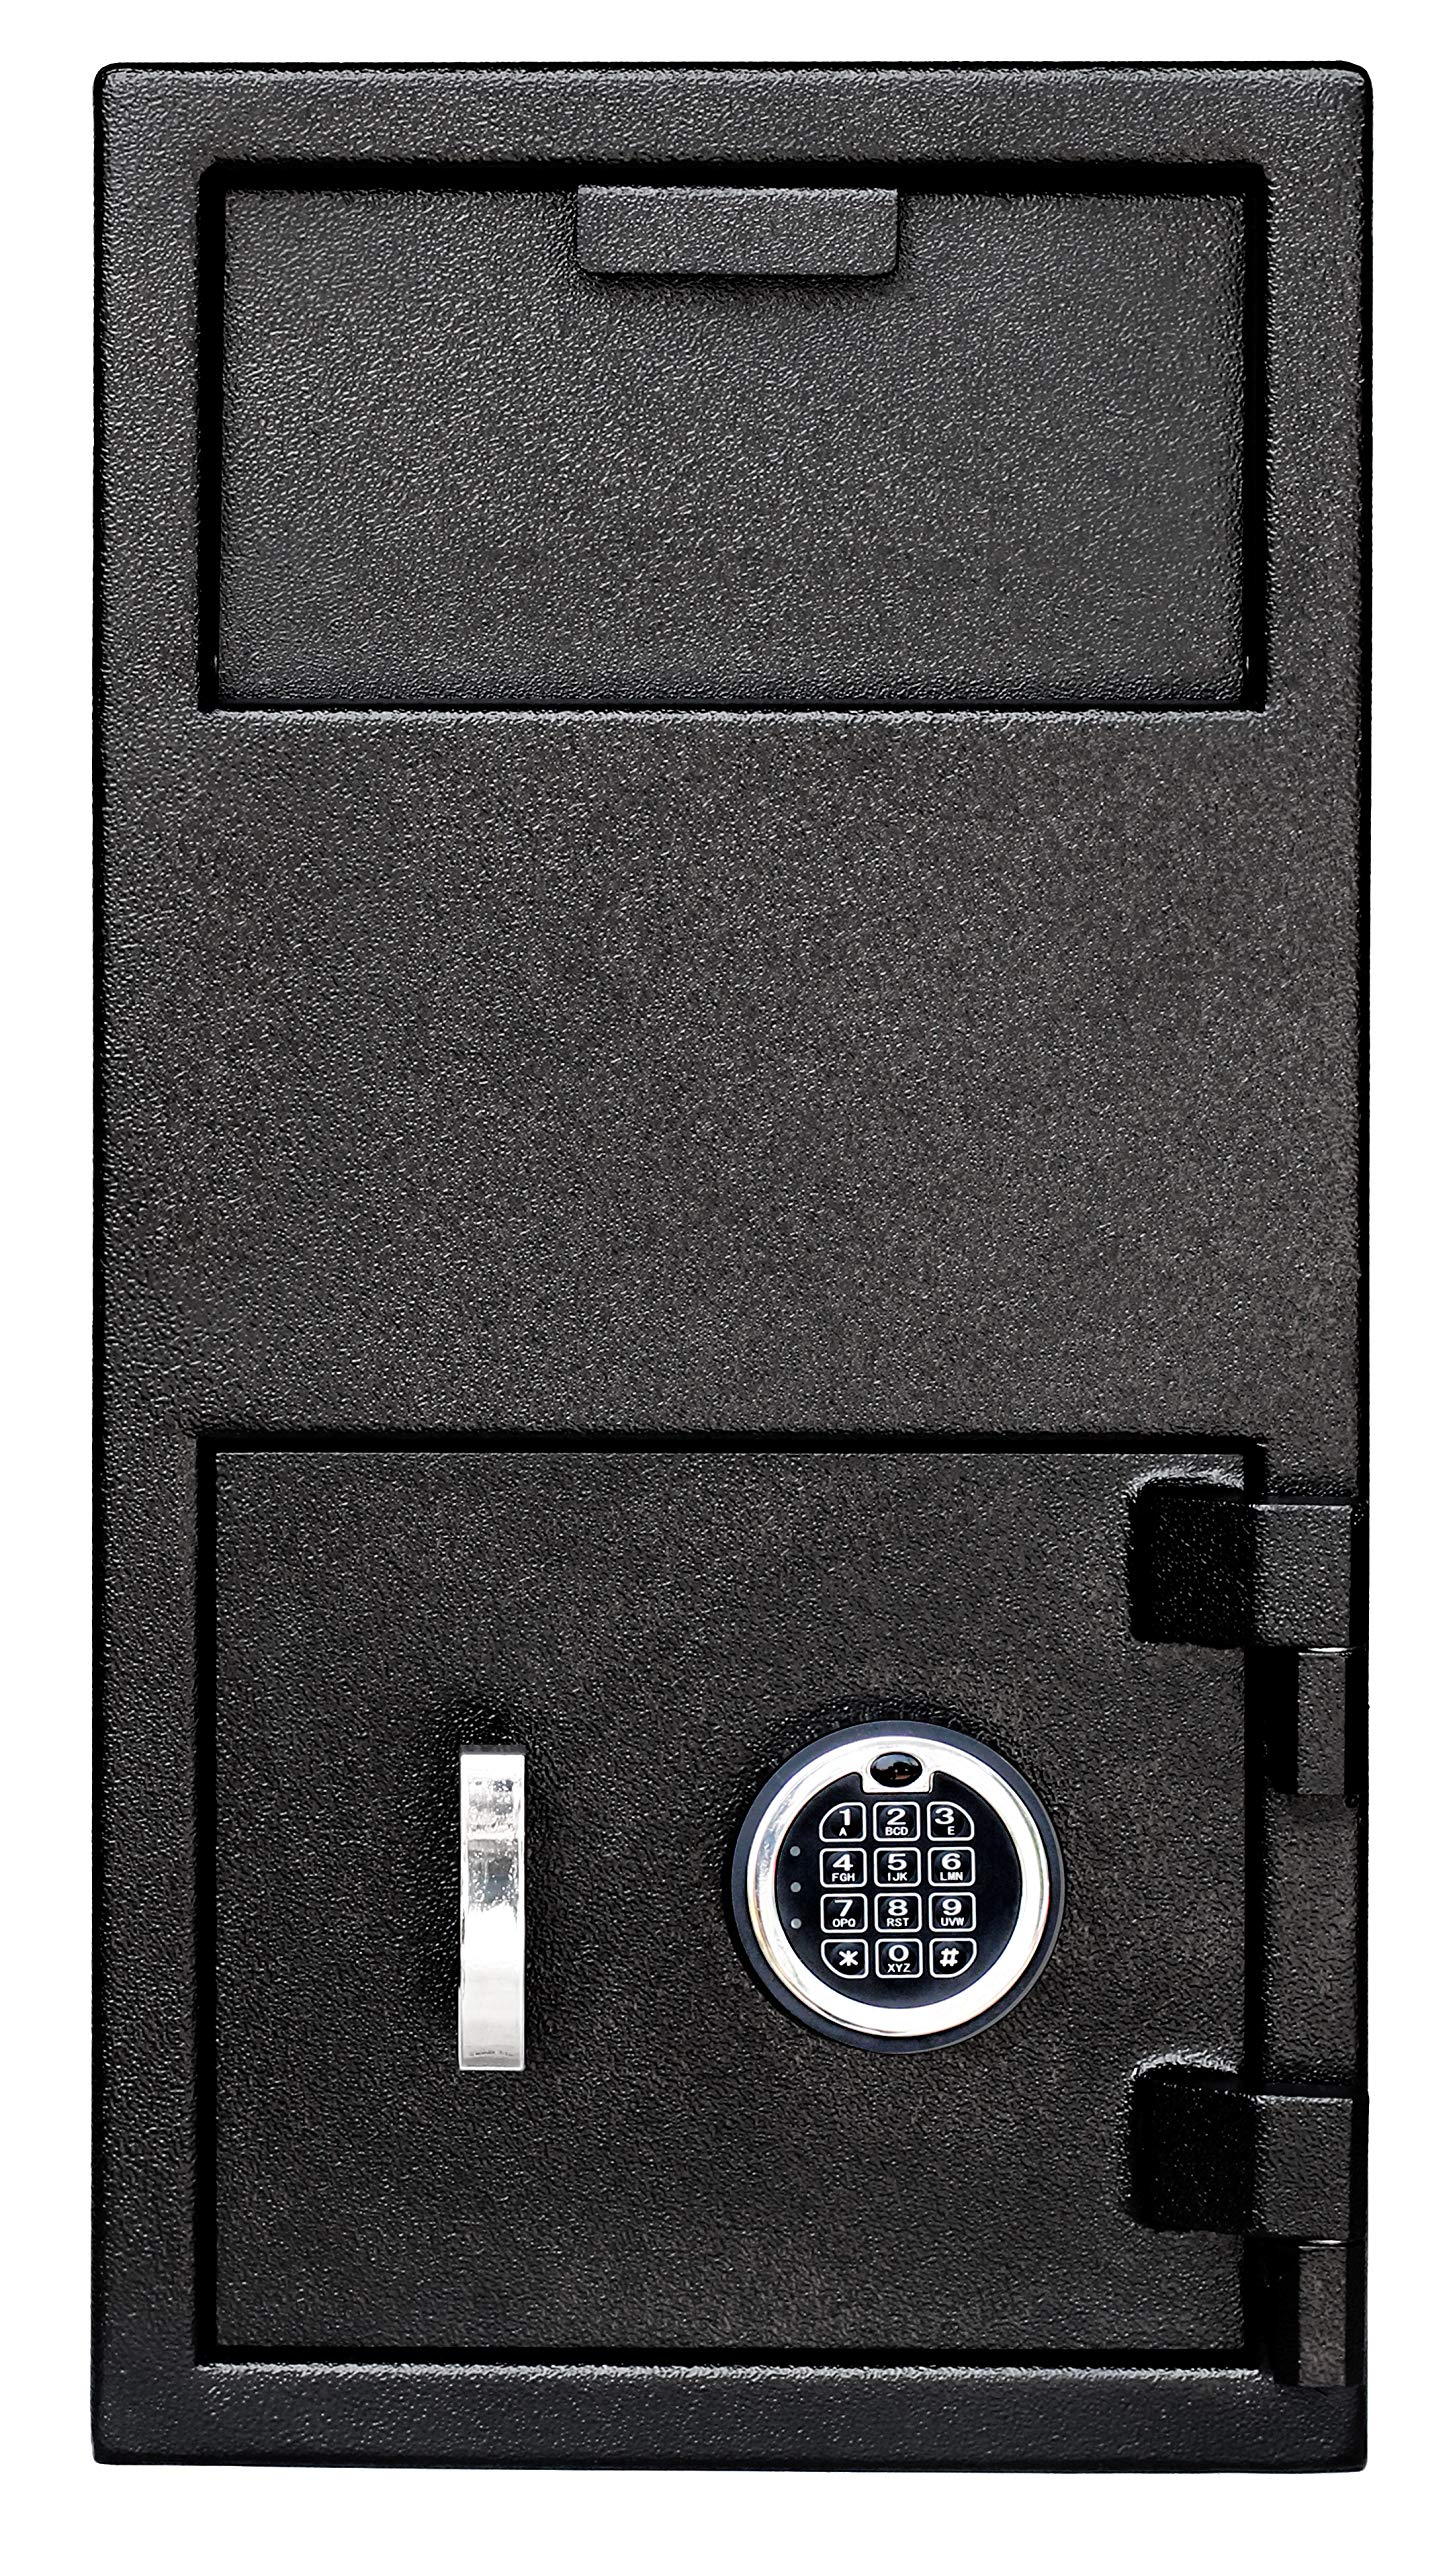 Templeton Large Depository Safe - Electronic Keypad Combination with Key Backup